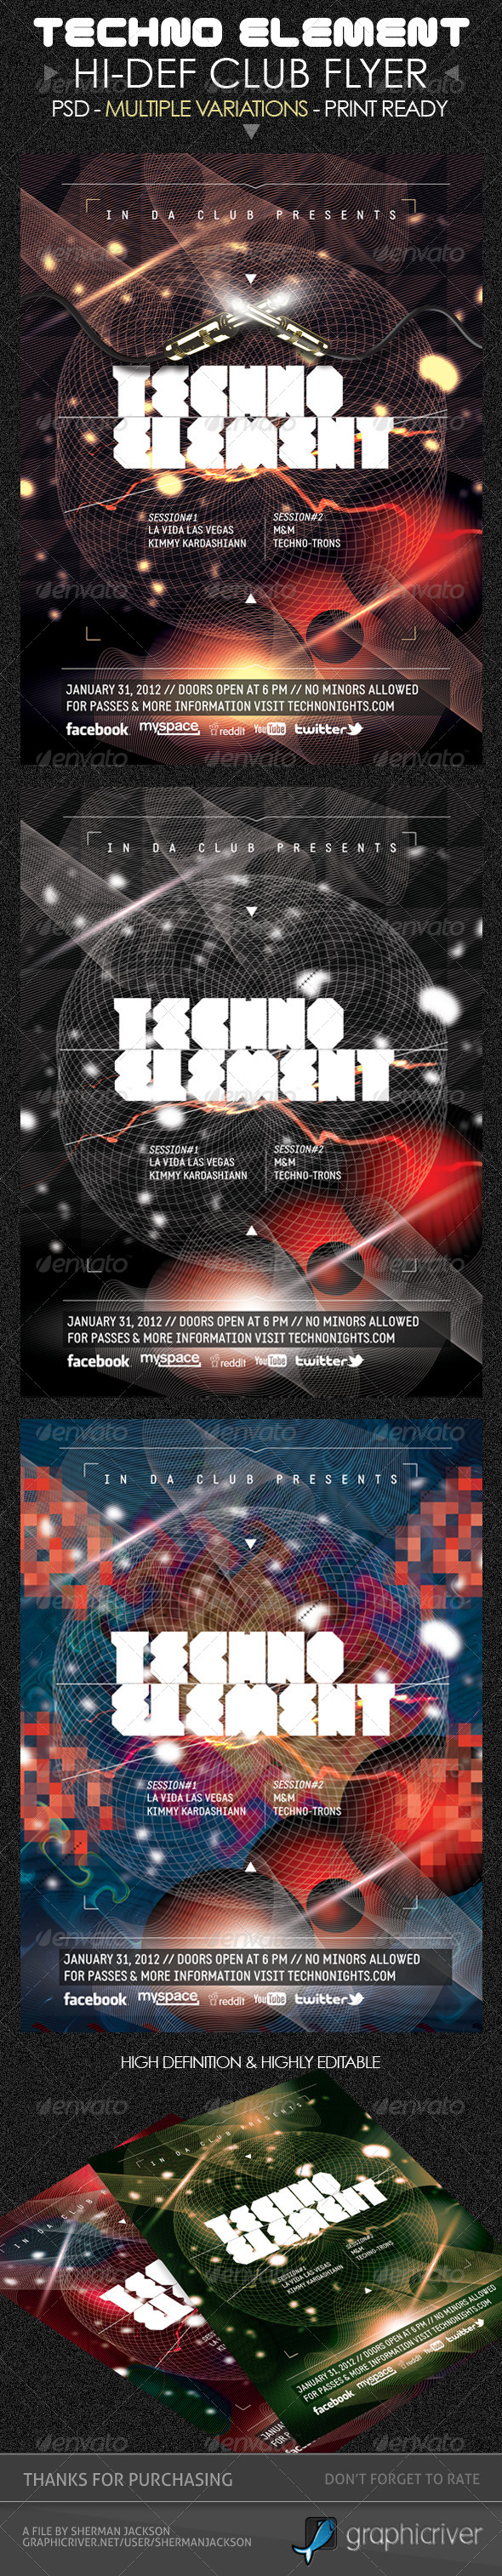 Techno Elements Party & Concert Flyer - Clubs & Parties Events